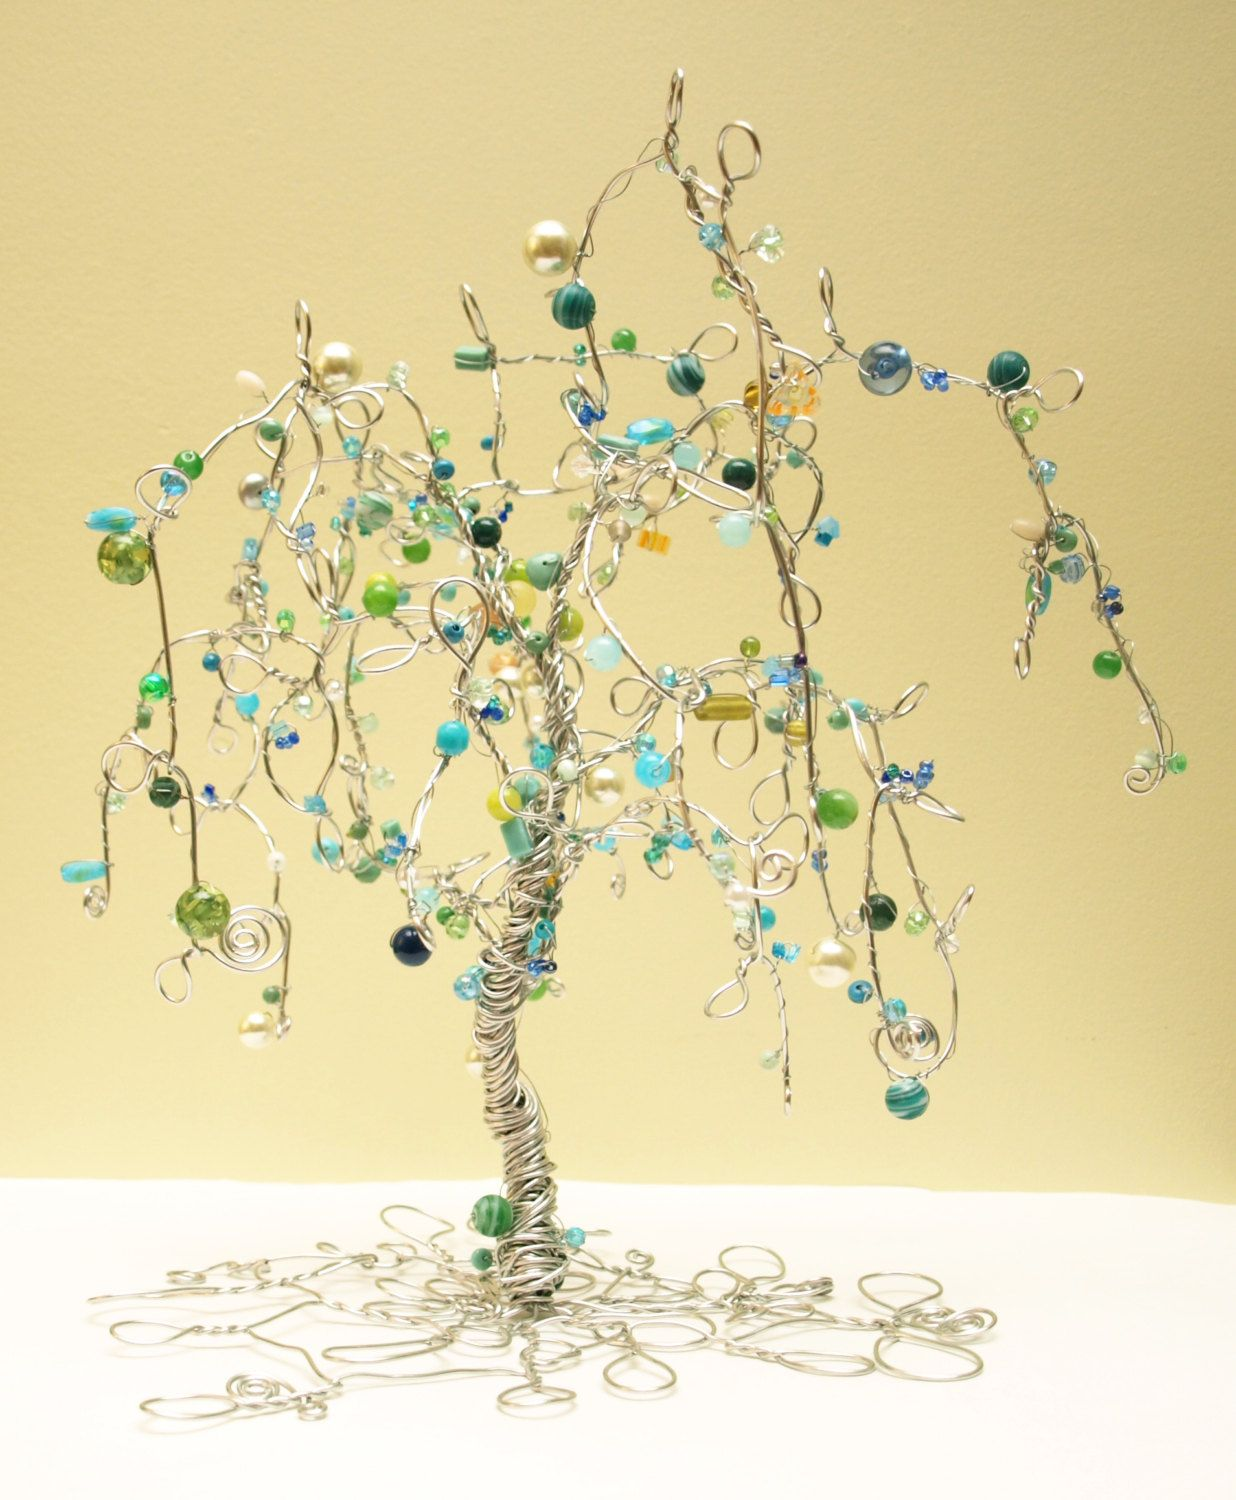 Beaded Wire Tree | Creativity... | Pinterest | Wire trees, Beads and ...